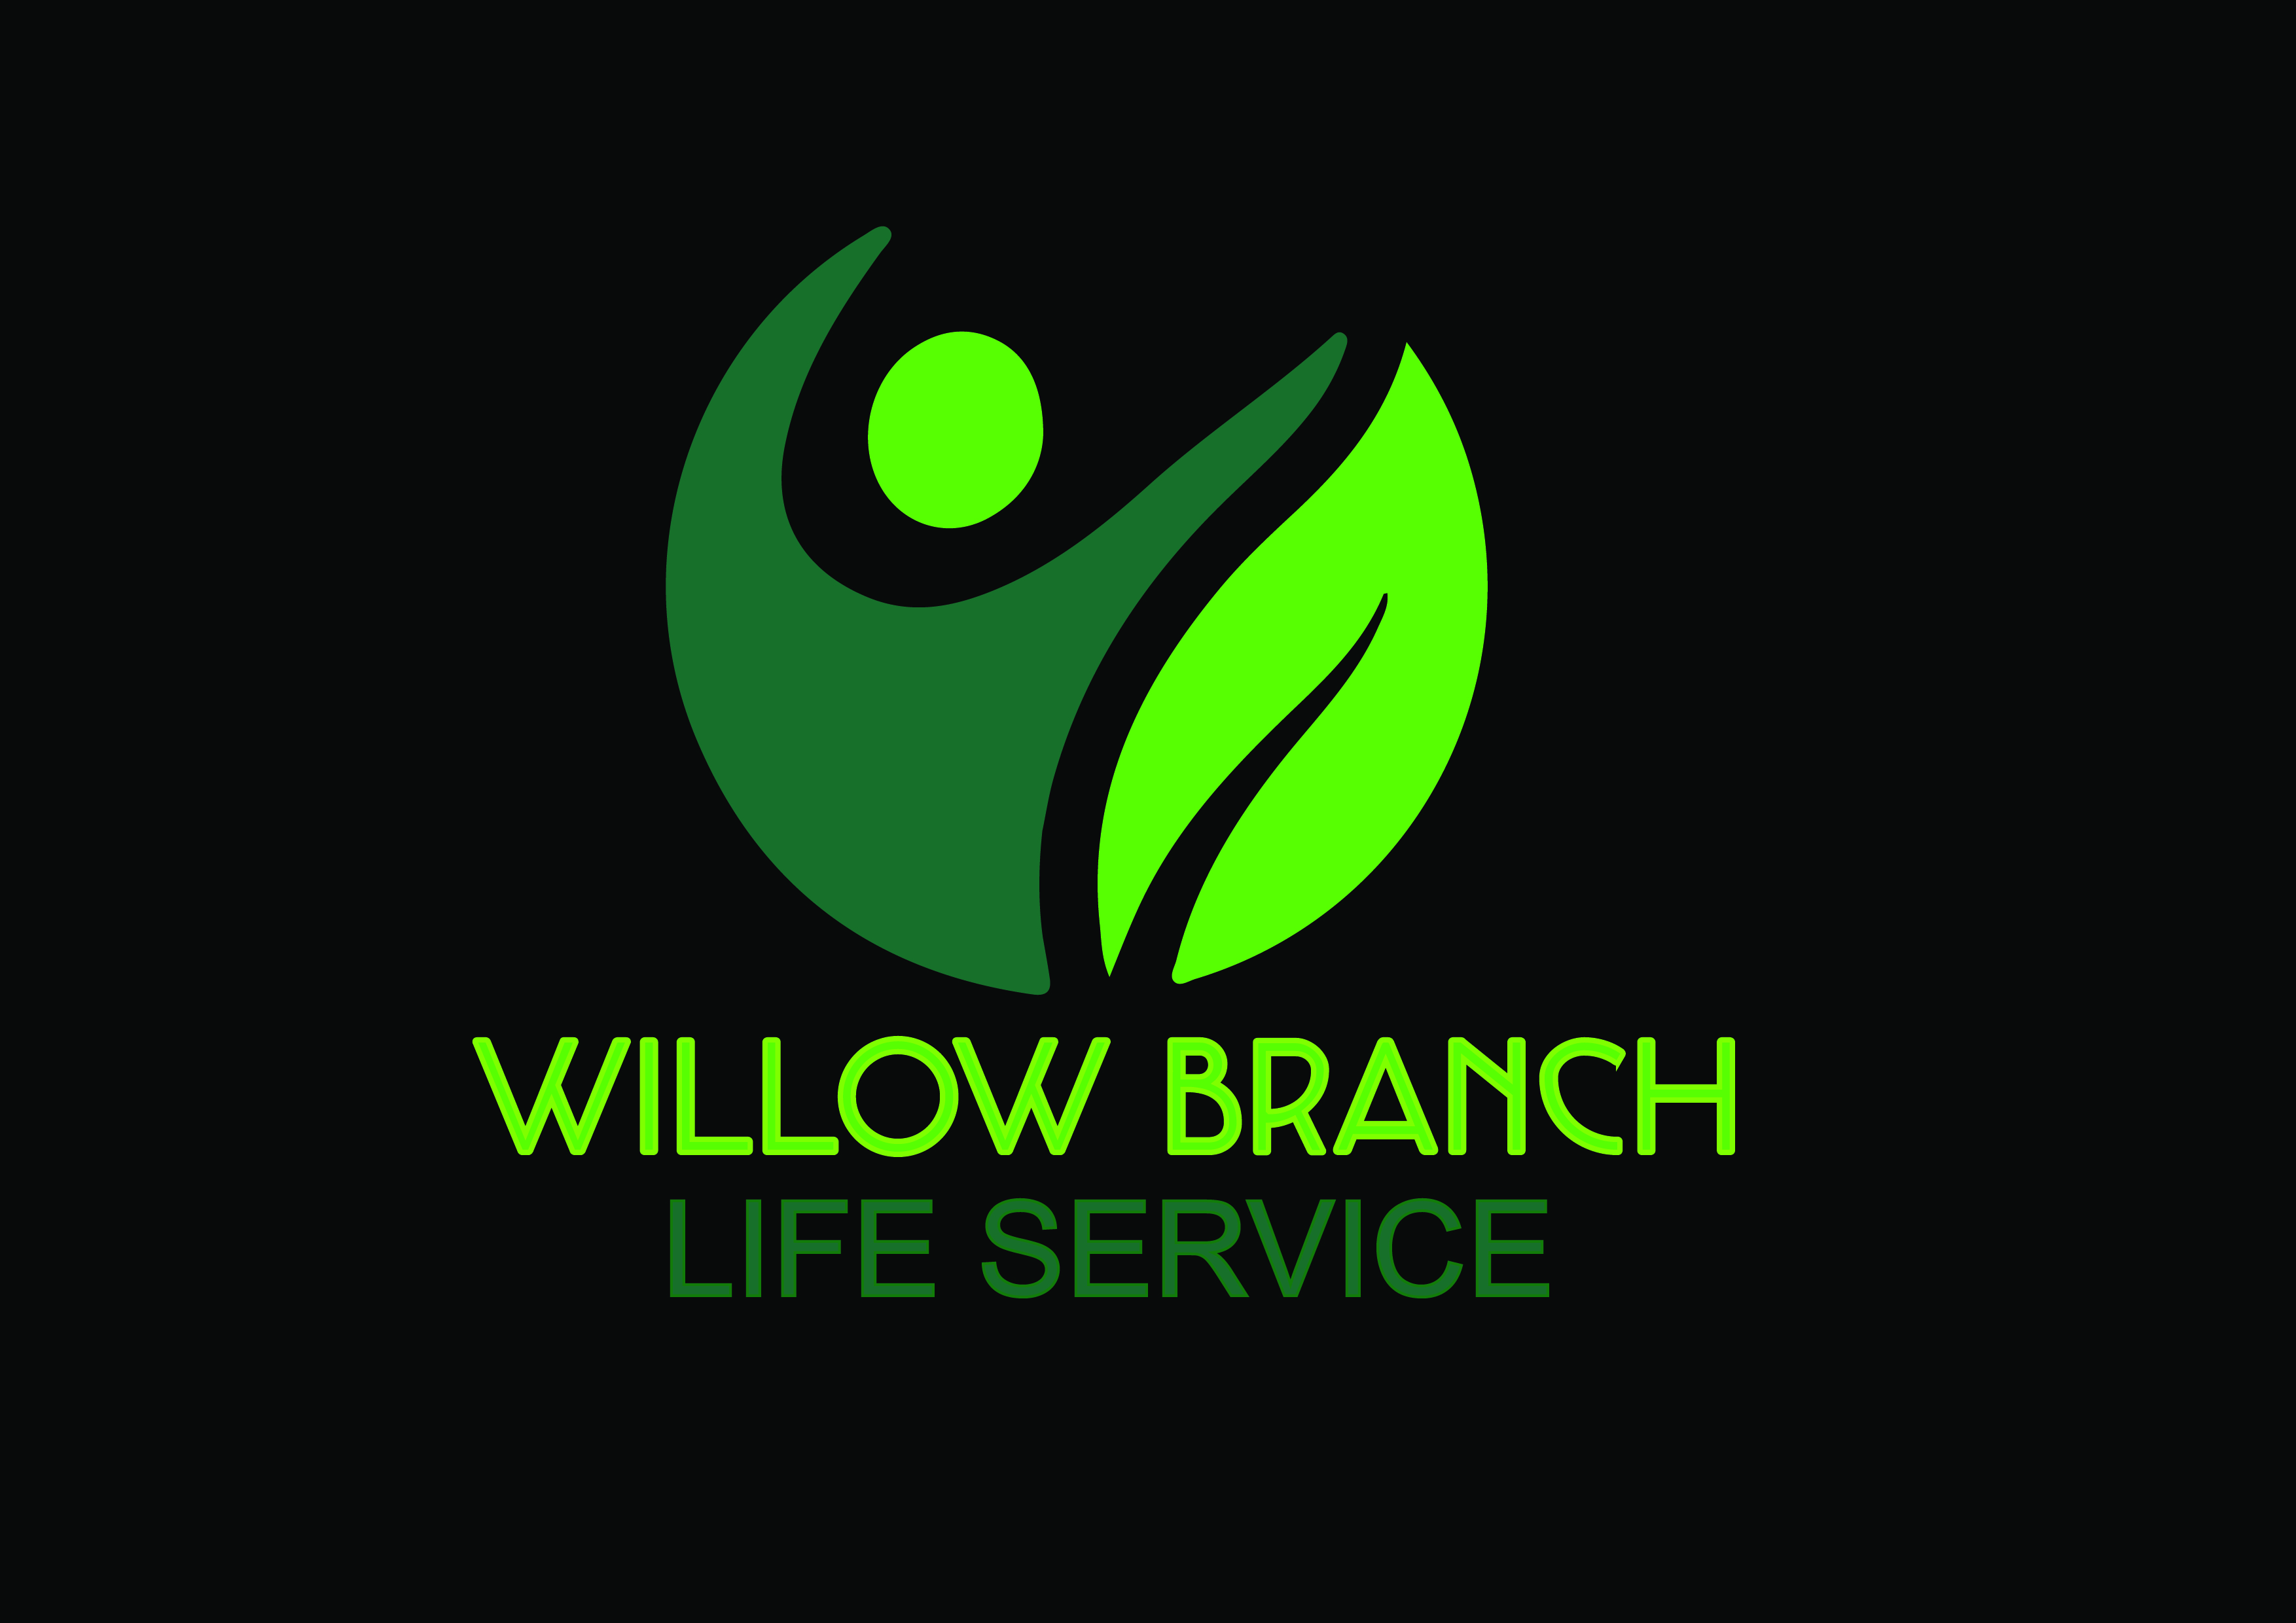 Logo Design by Anum Aamir - Entry No. 4 in the Logo Design Contest Artistic Logo Design for Willow Branch Life Service.